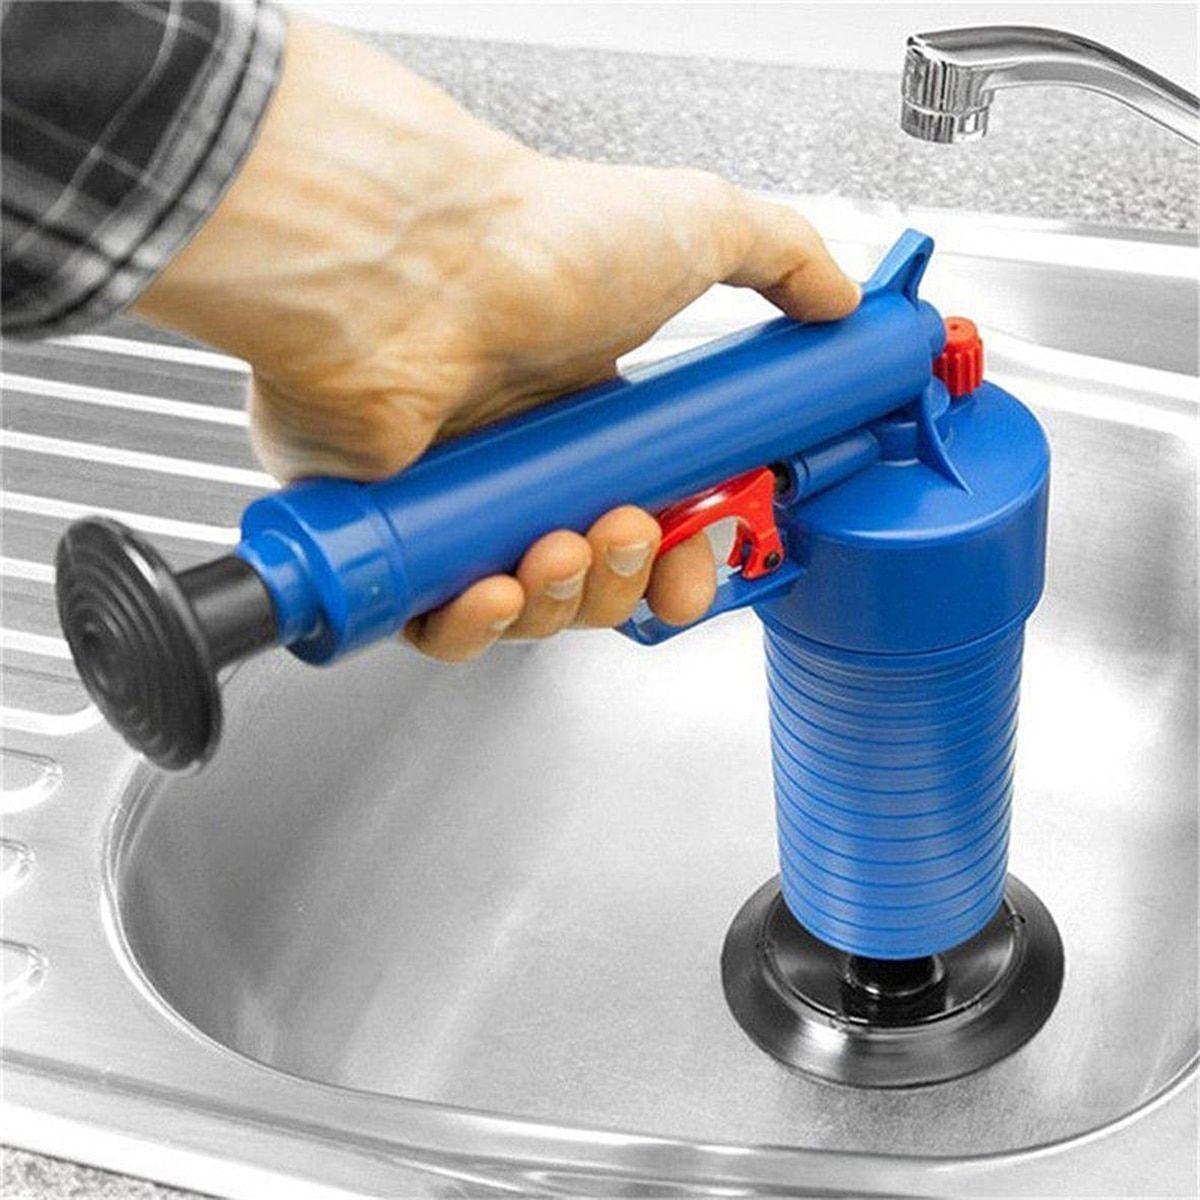 Air Pressure <font><b>Drain</b></font> Cleaner Sewer Cleaning Brush Kitchen Bathroom Toilet Dredge Plunger Basin Pipeline Clogged Remover Tool Set